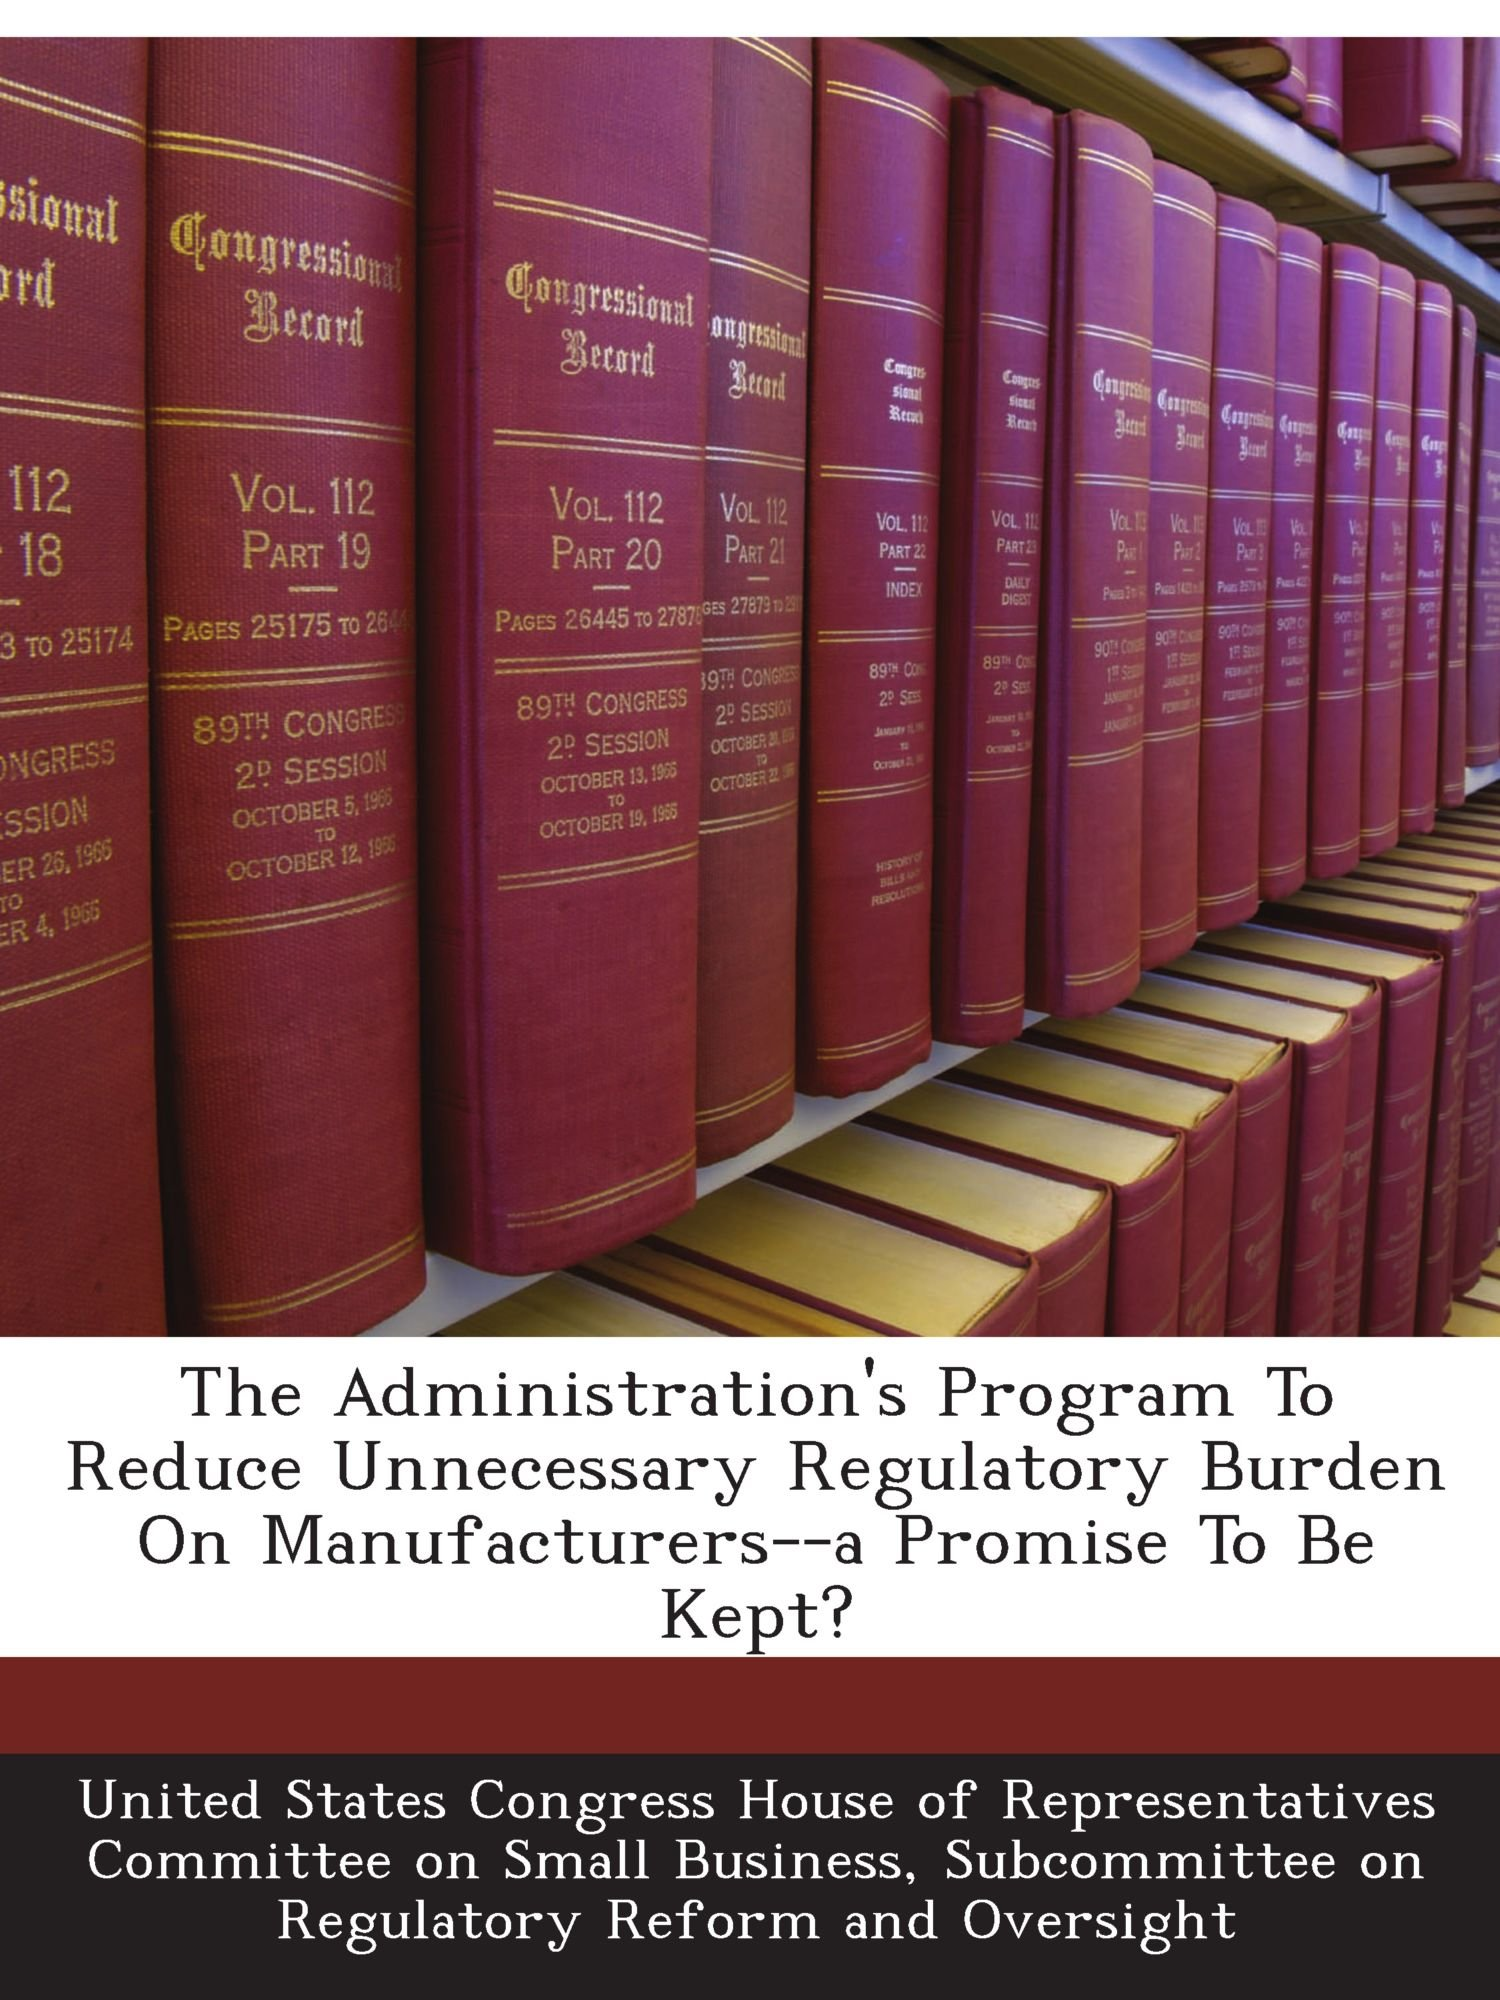 The Administration's Program To Reduce Unnecessary Regulatory Burden On Manufacturers--a Promise To Be Kept? PDF